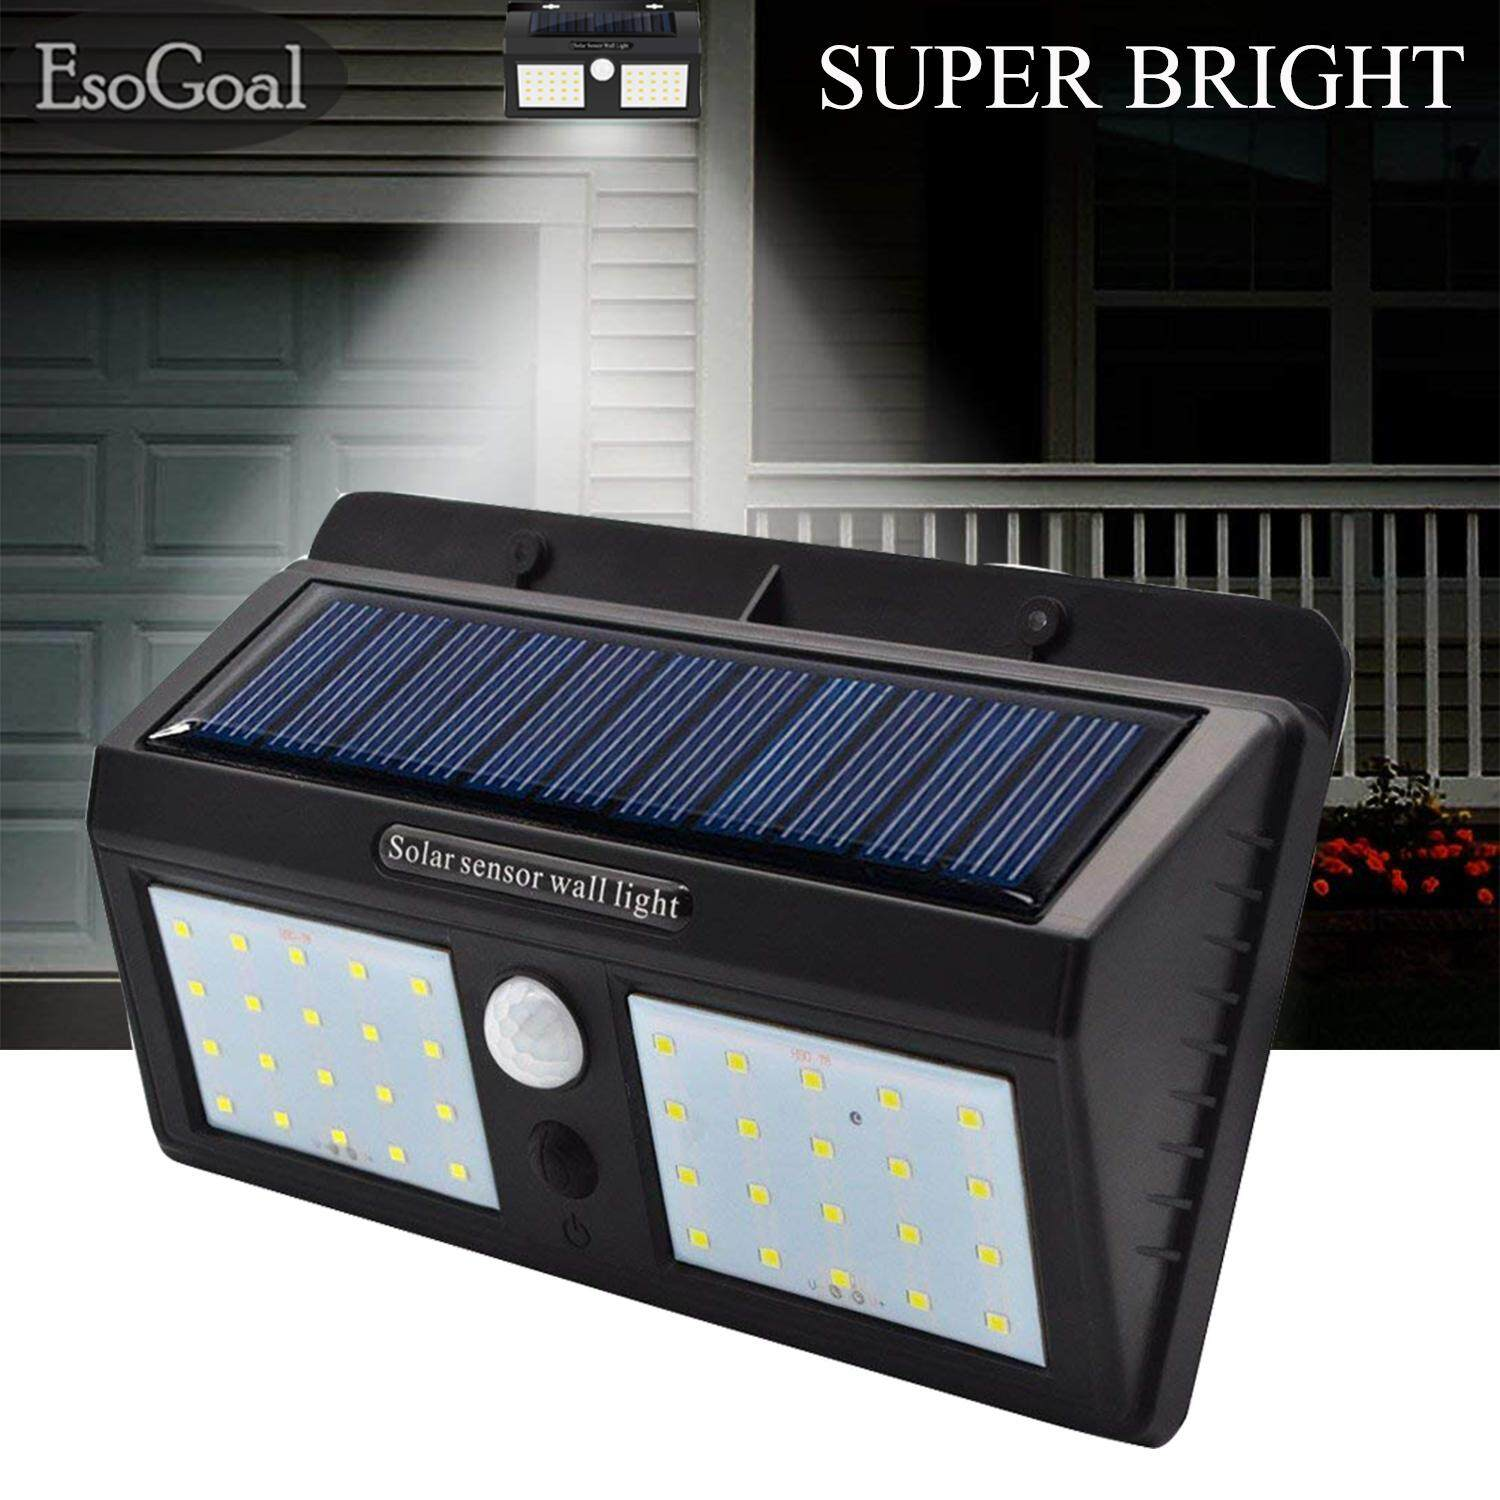 Outdoor Lighting For Sale Lights Prices Brands Review Photoelectric Sensor Esogoal Solar Wall Led Motion Waterproof Wireless Powered